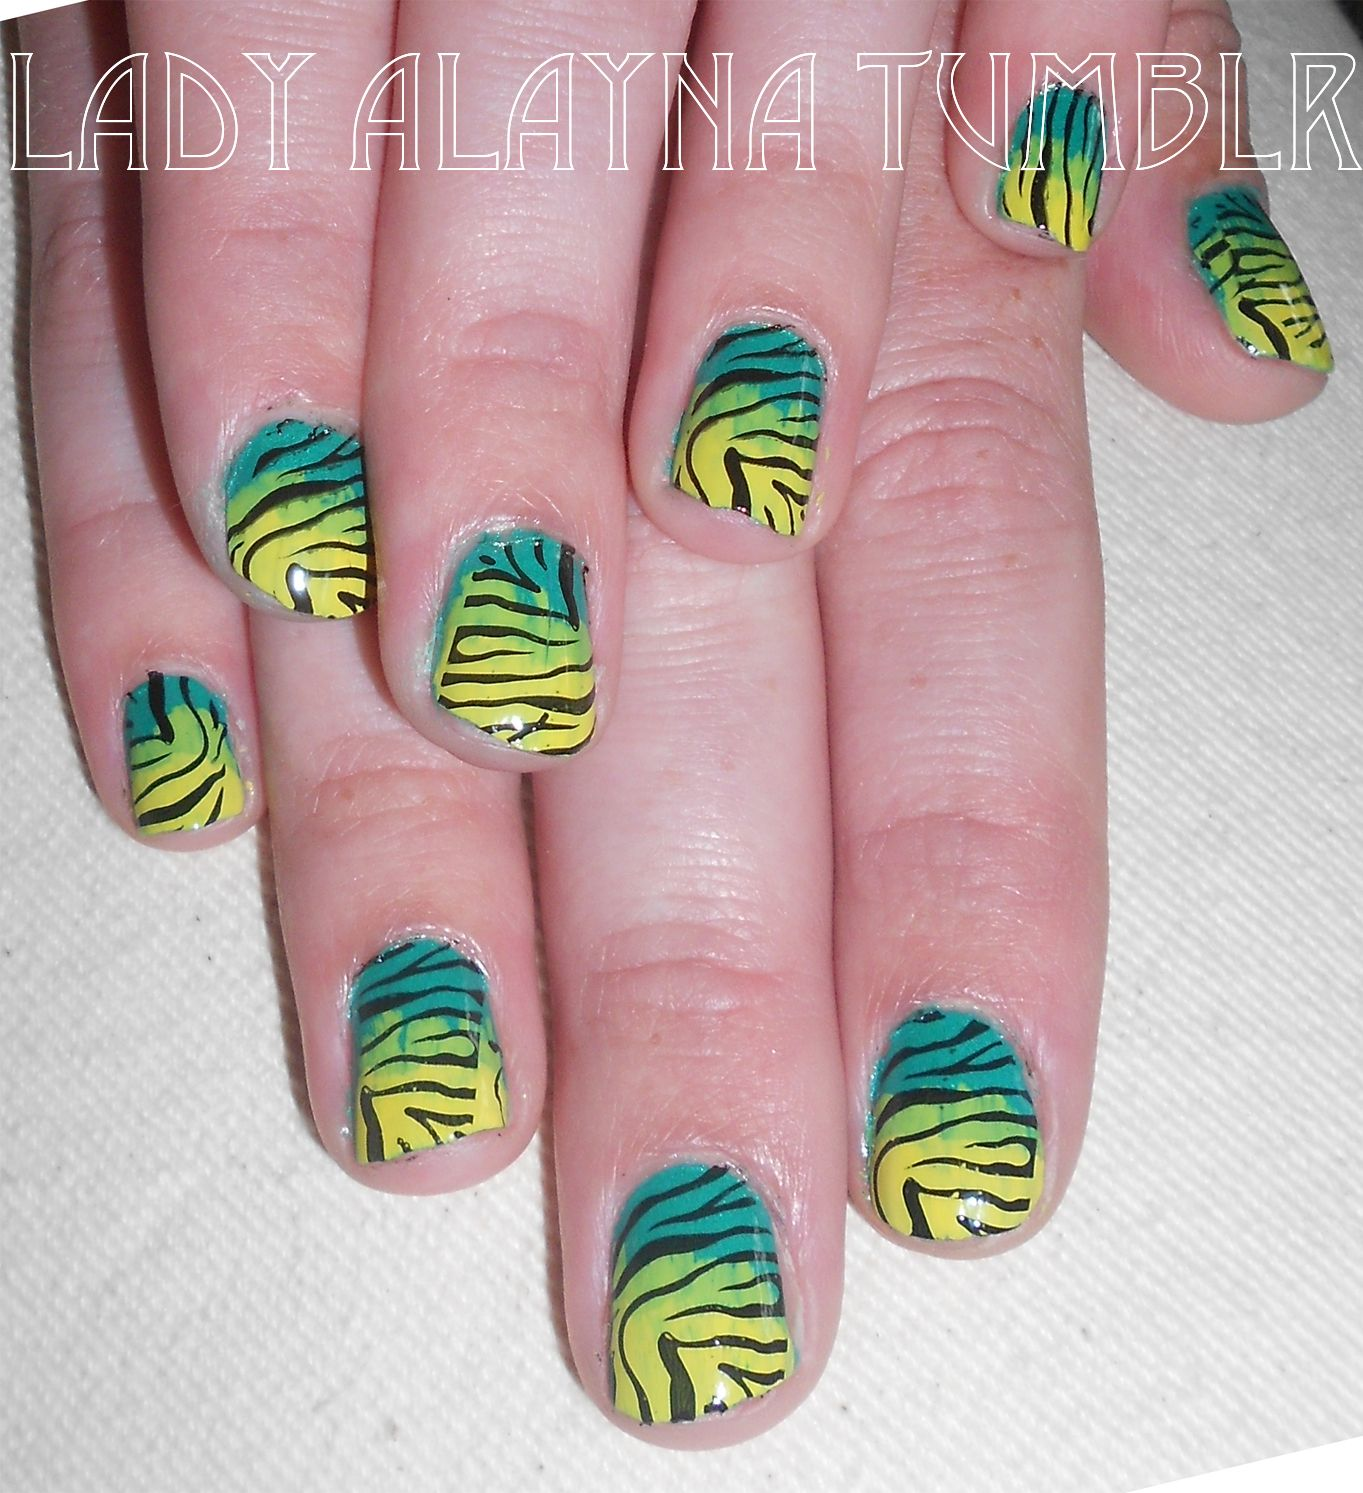 Neon-green Summer Tiger Nails for Kristen Mary Oberg! Love when i get to do other people's nails and not just my own!  Alayna Josz // www.instagram.com/ladyalayna LadyAlaynaTumblr.com  #SephoraNailSpotting #nailitdaily #nailart #nailartaddict #nailswag #NOTD #nailporn #nailgasm #ilovenails